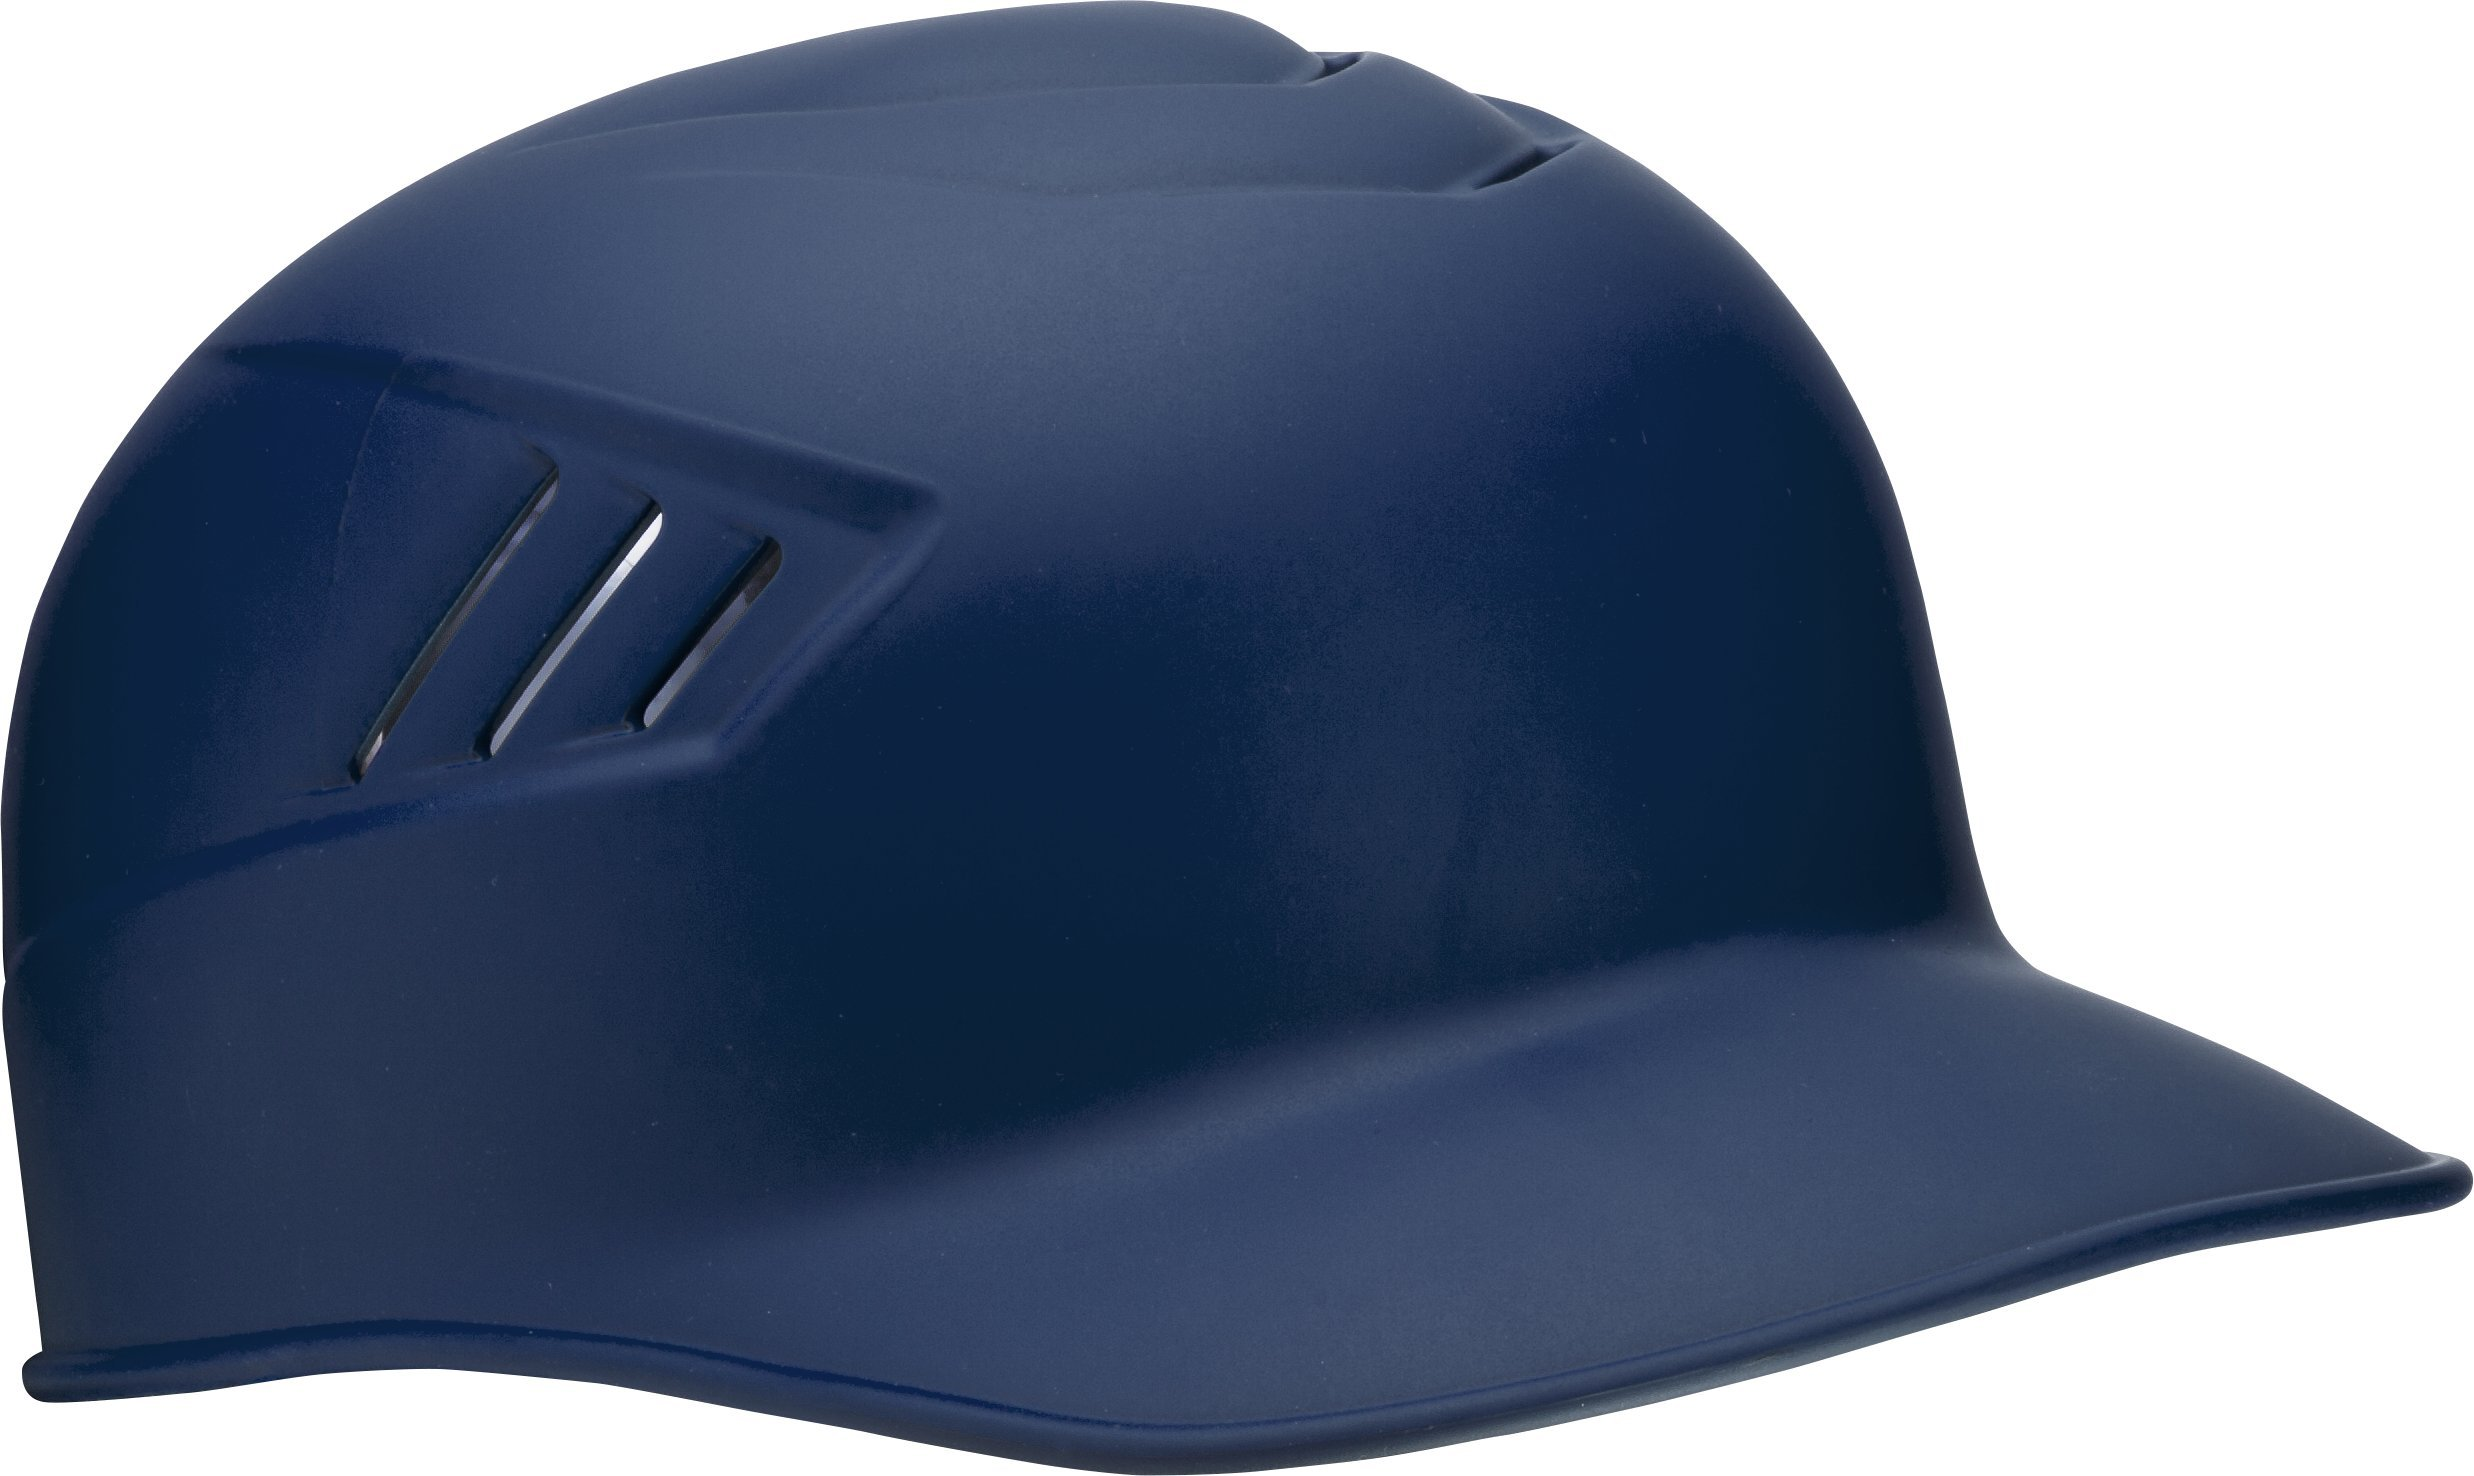 Rawlings Coolflo Matte Style Alpha Sized Base Coach Helmet, Navy, Large by Rawlings